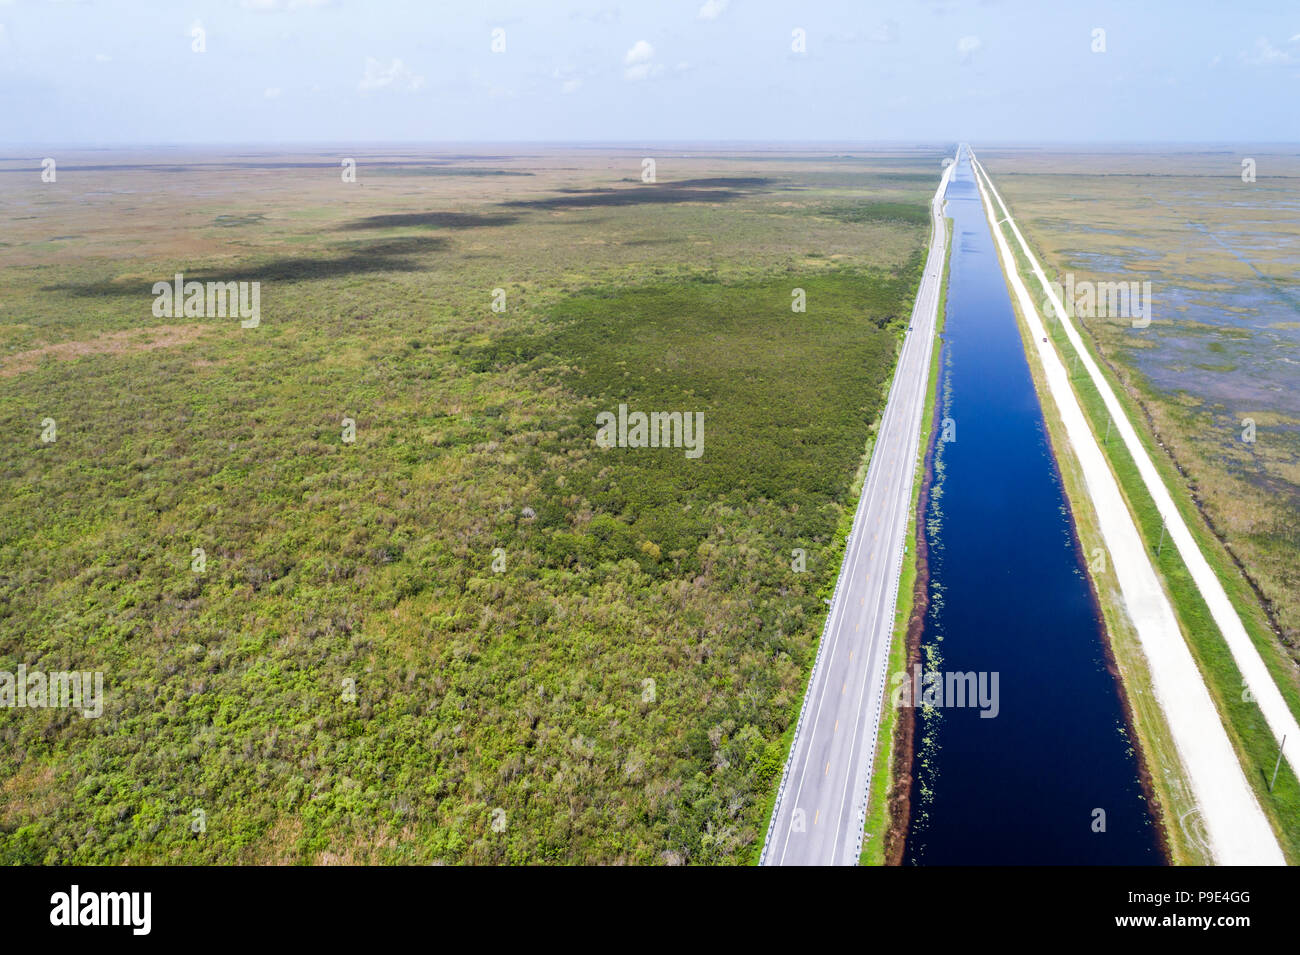 Miami Florida Everglades National Park Tamiami Trail US route 41 highway canal levee water conservation area 3A freshwater slough aerial overhead bird Stock Photo